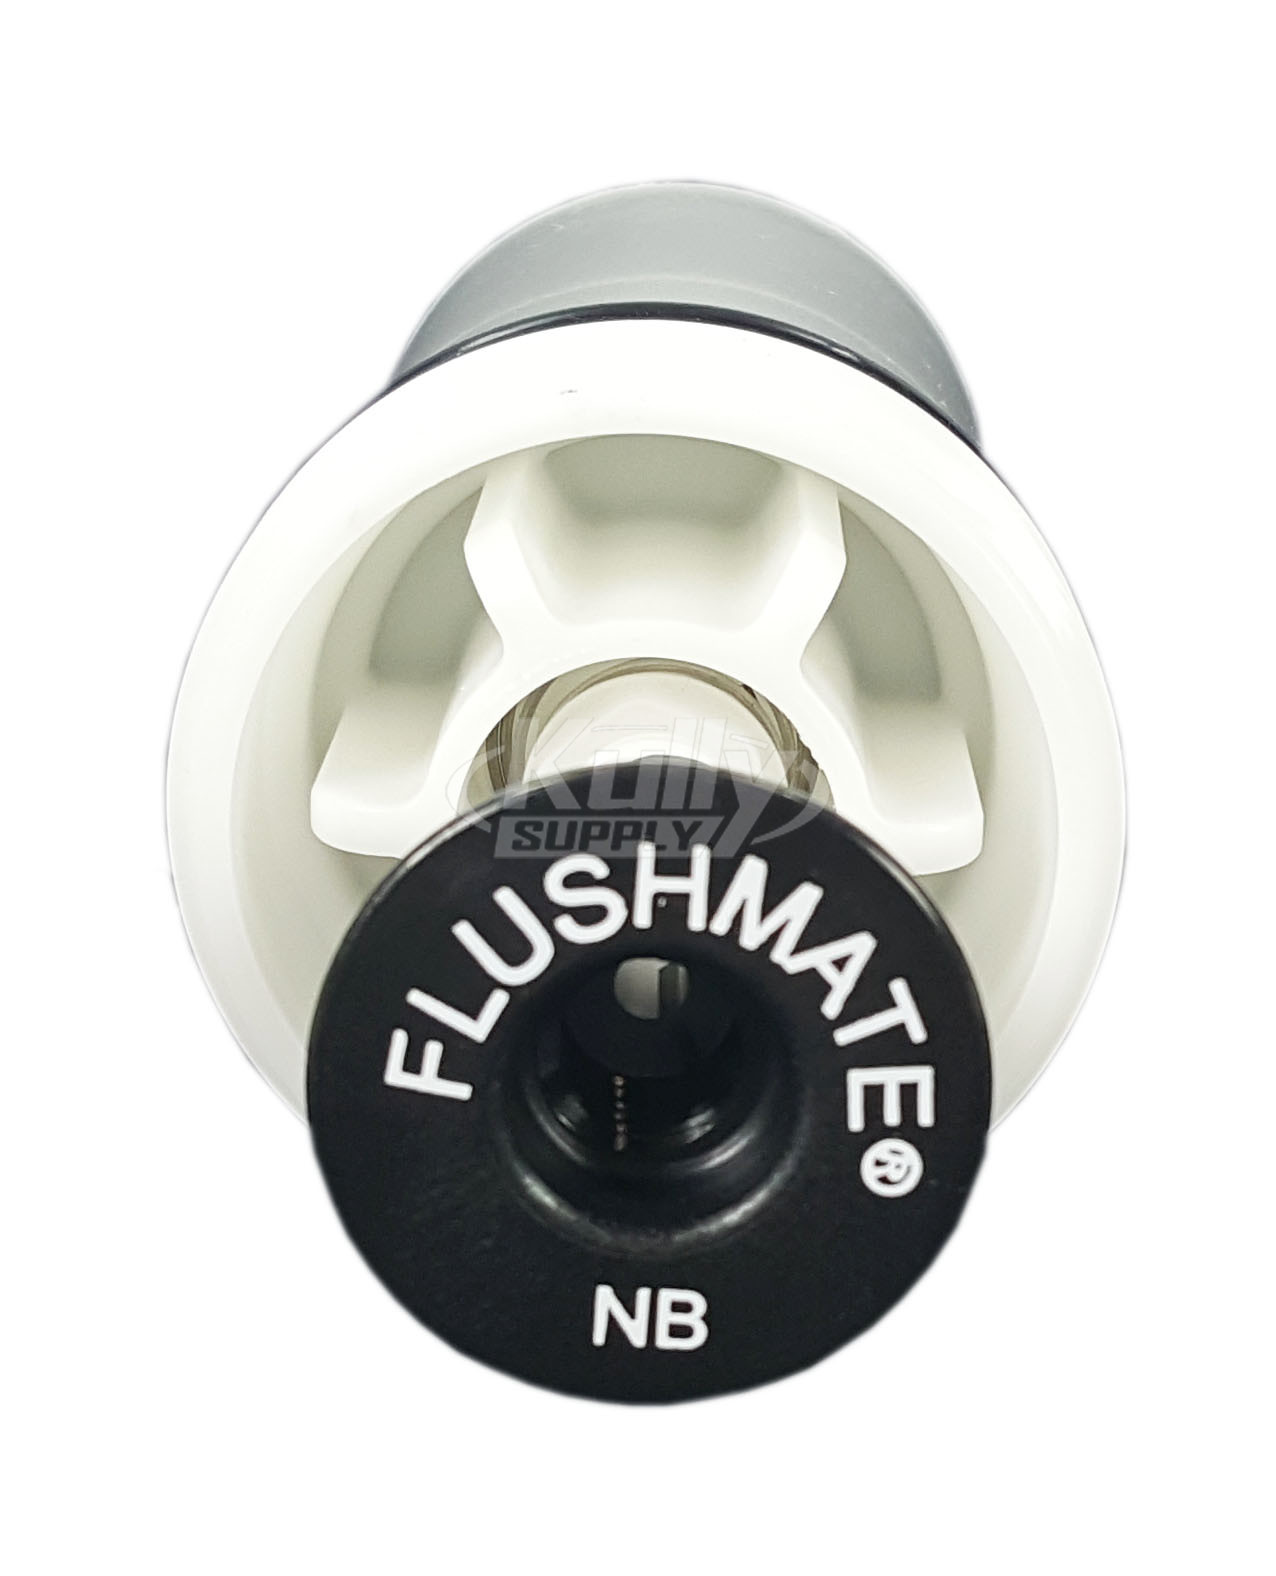 Flushmate C-100502-K Flush Cartridge for Kohler K-3597 ...